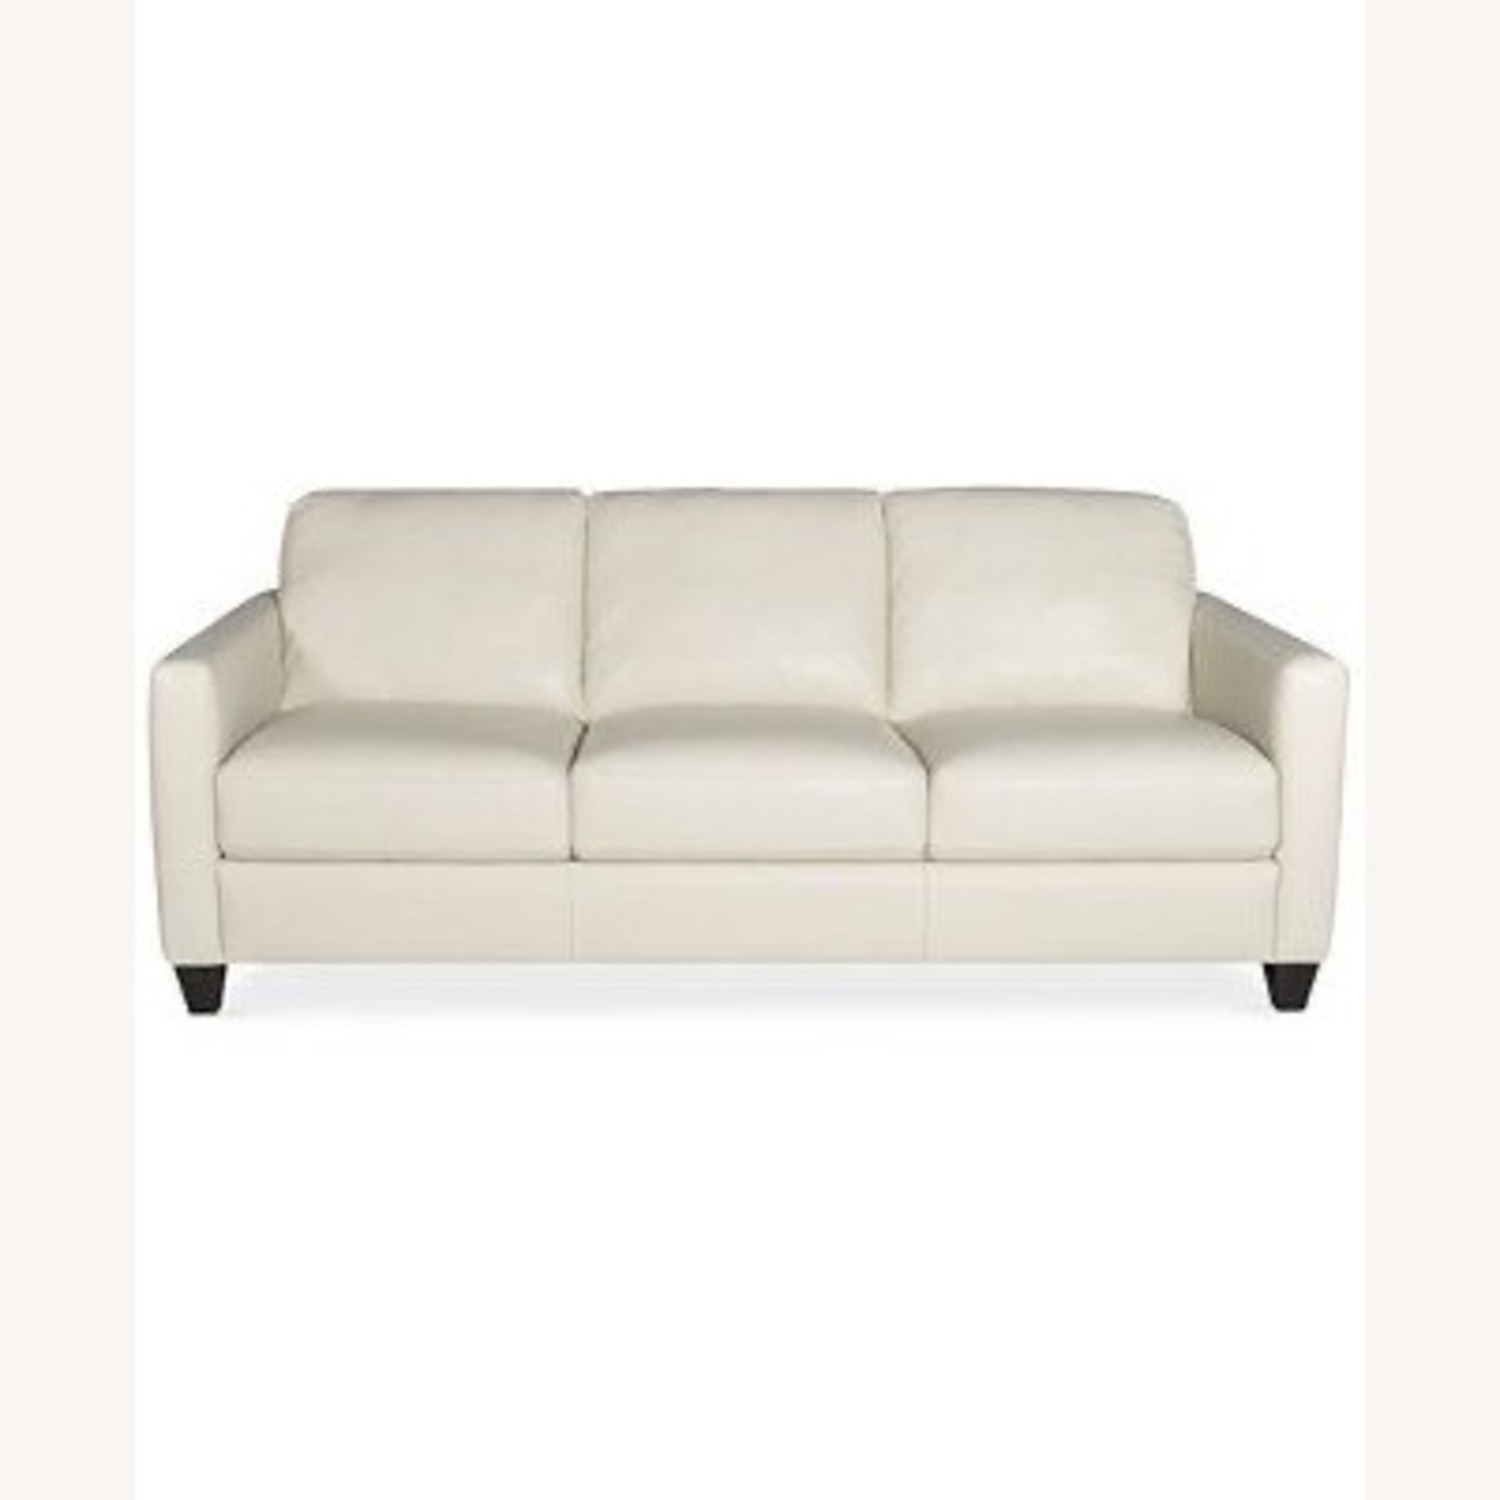 Macy's White Leather Three-seater Couch - image-8